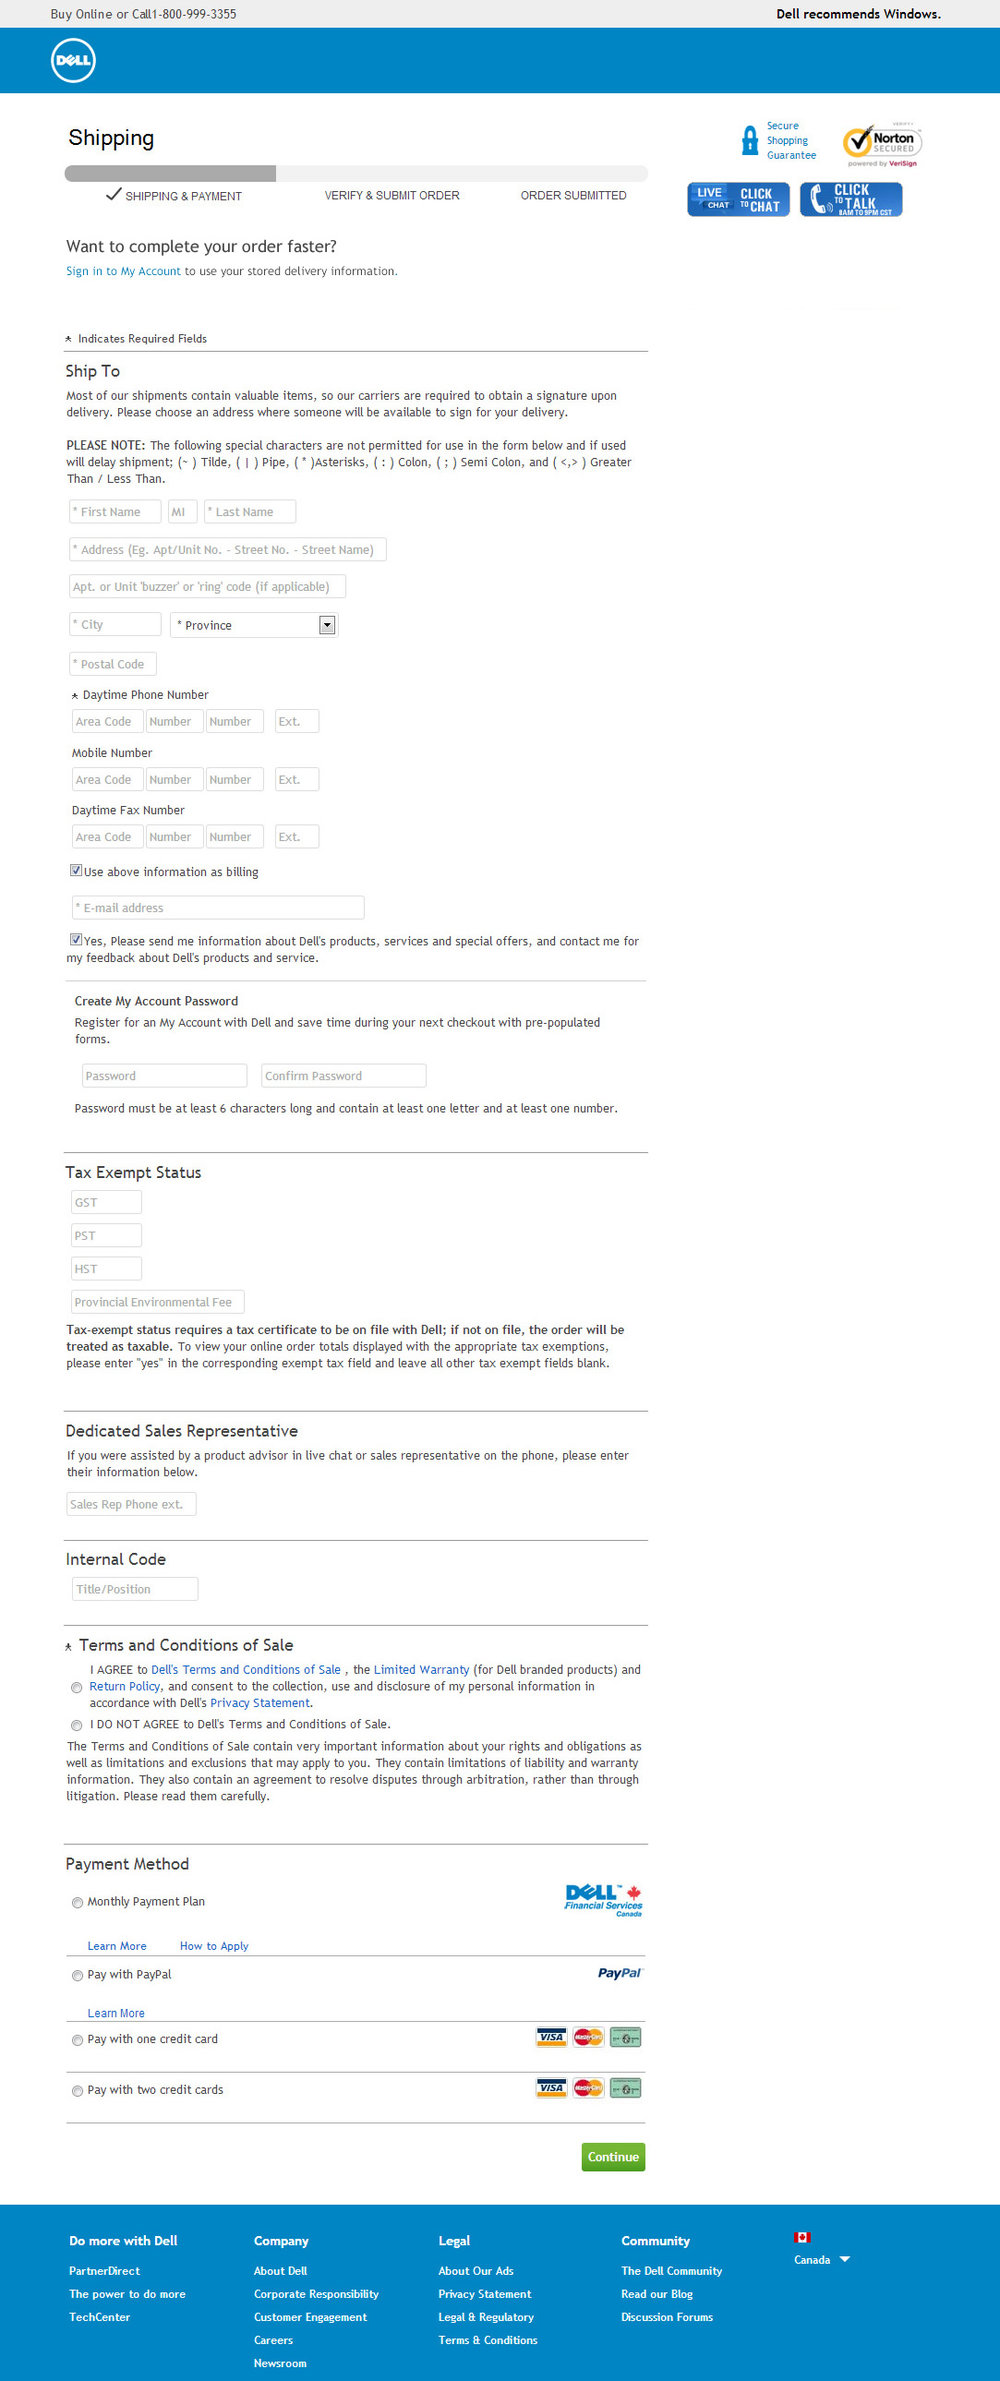 Product page (before) : Copy heavy, excessive forms fields (29), confusing payment options